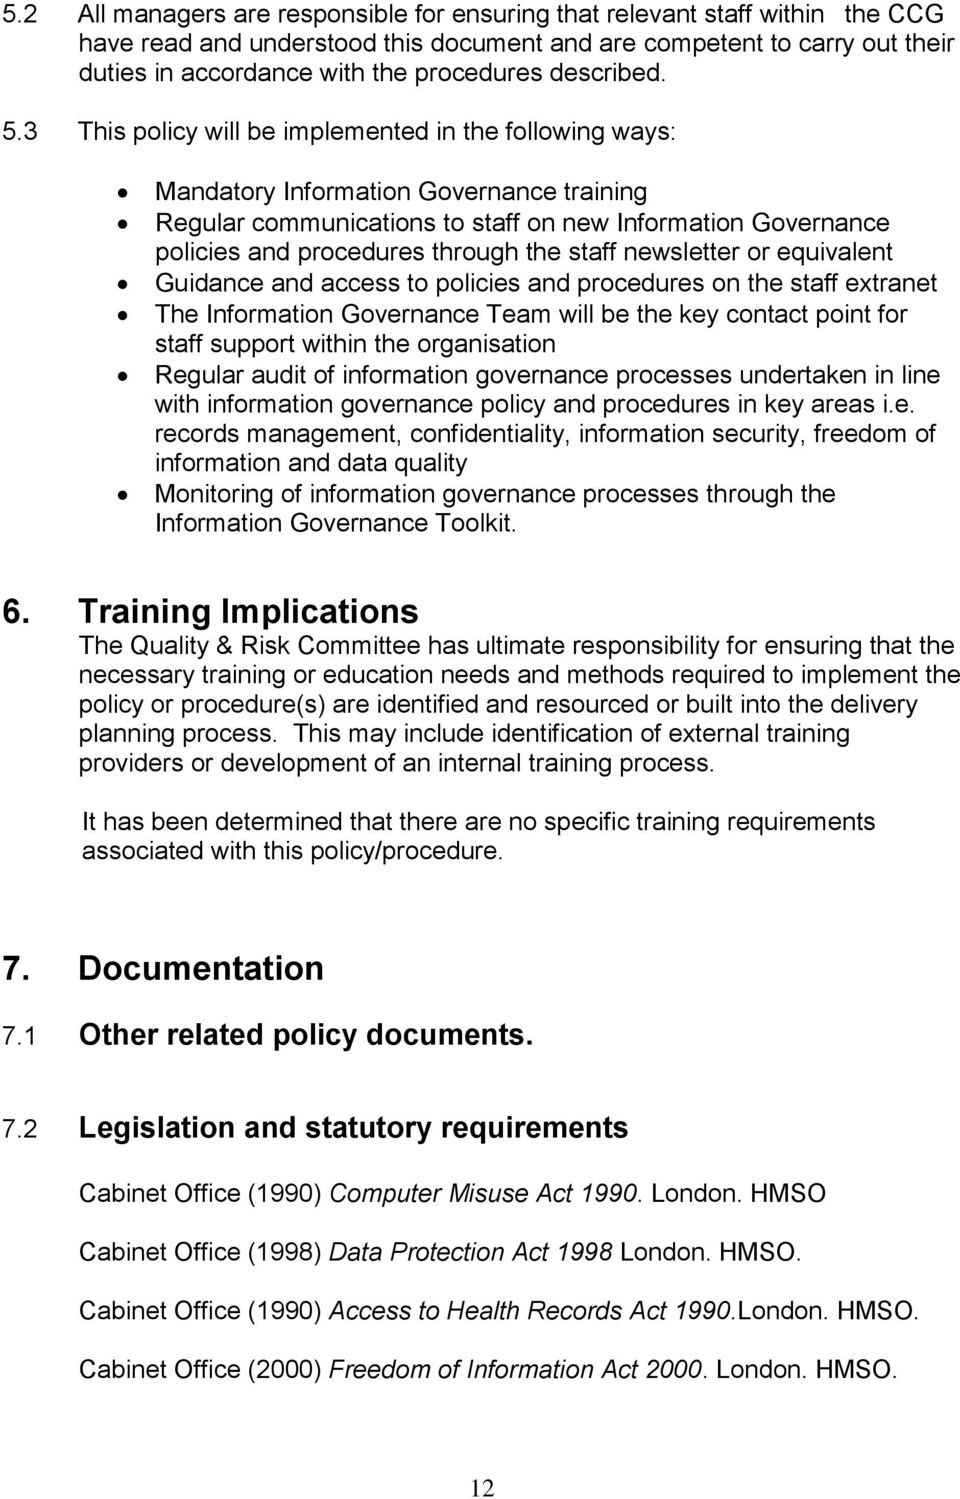 3 This policy will be implemented in the following ways: Mandatory Information Governance training Regular communications to staff on new Information Governance policies and procedures through the